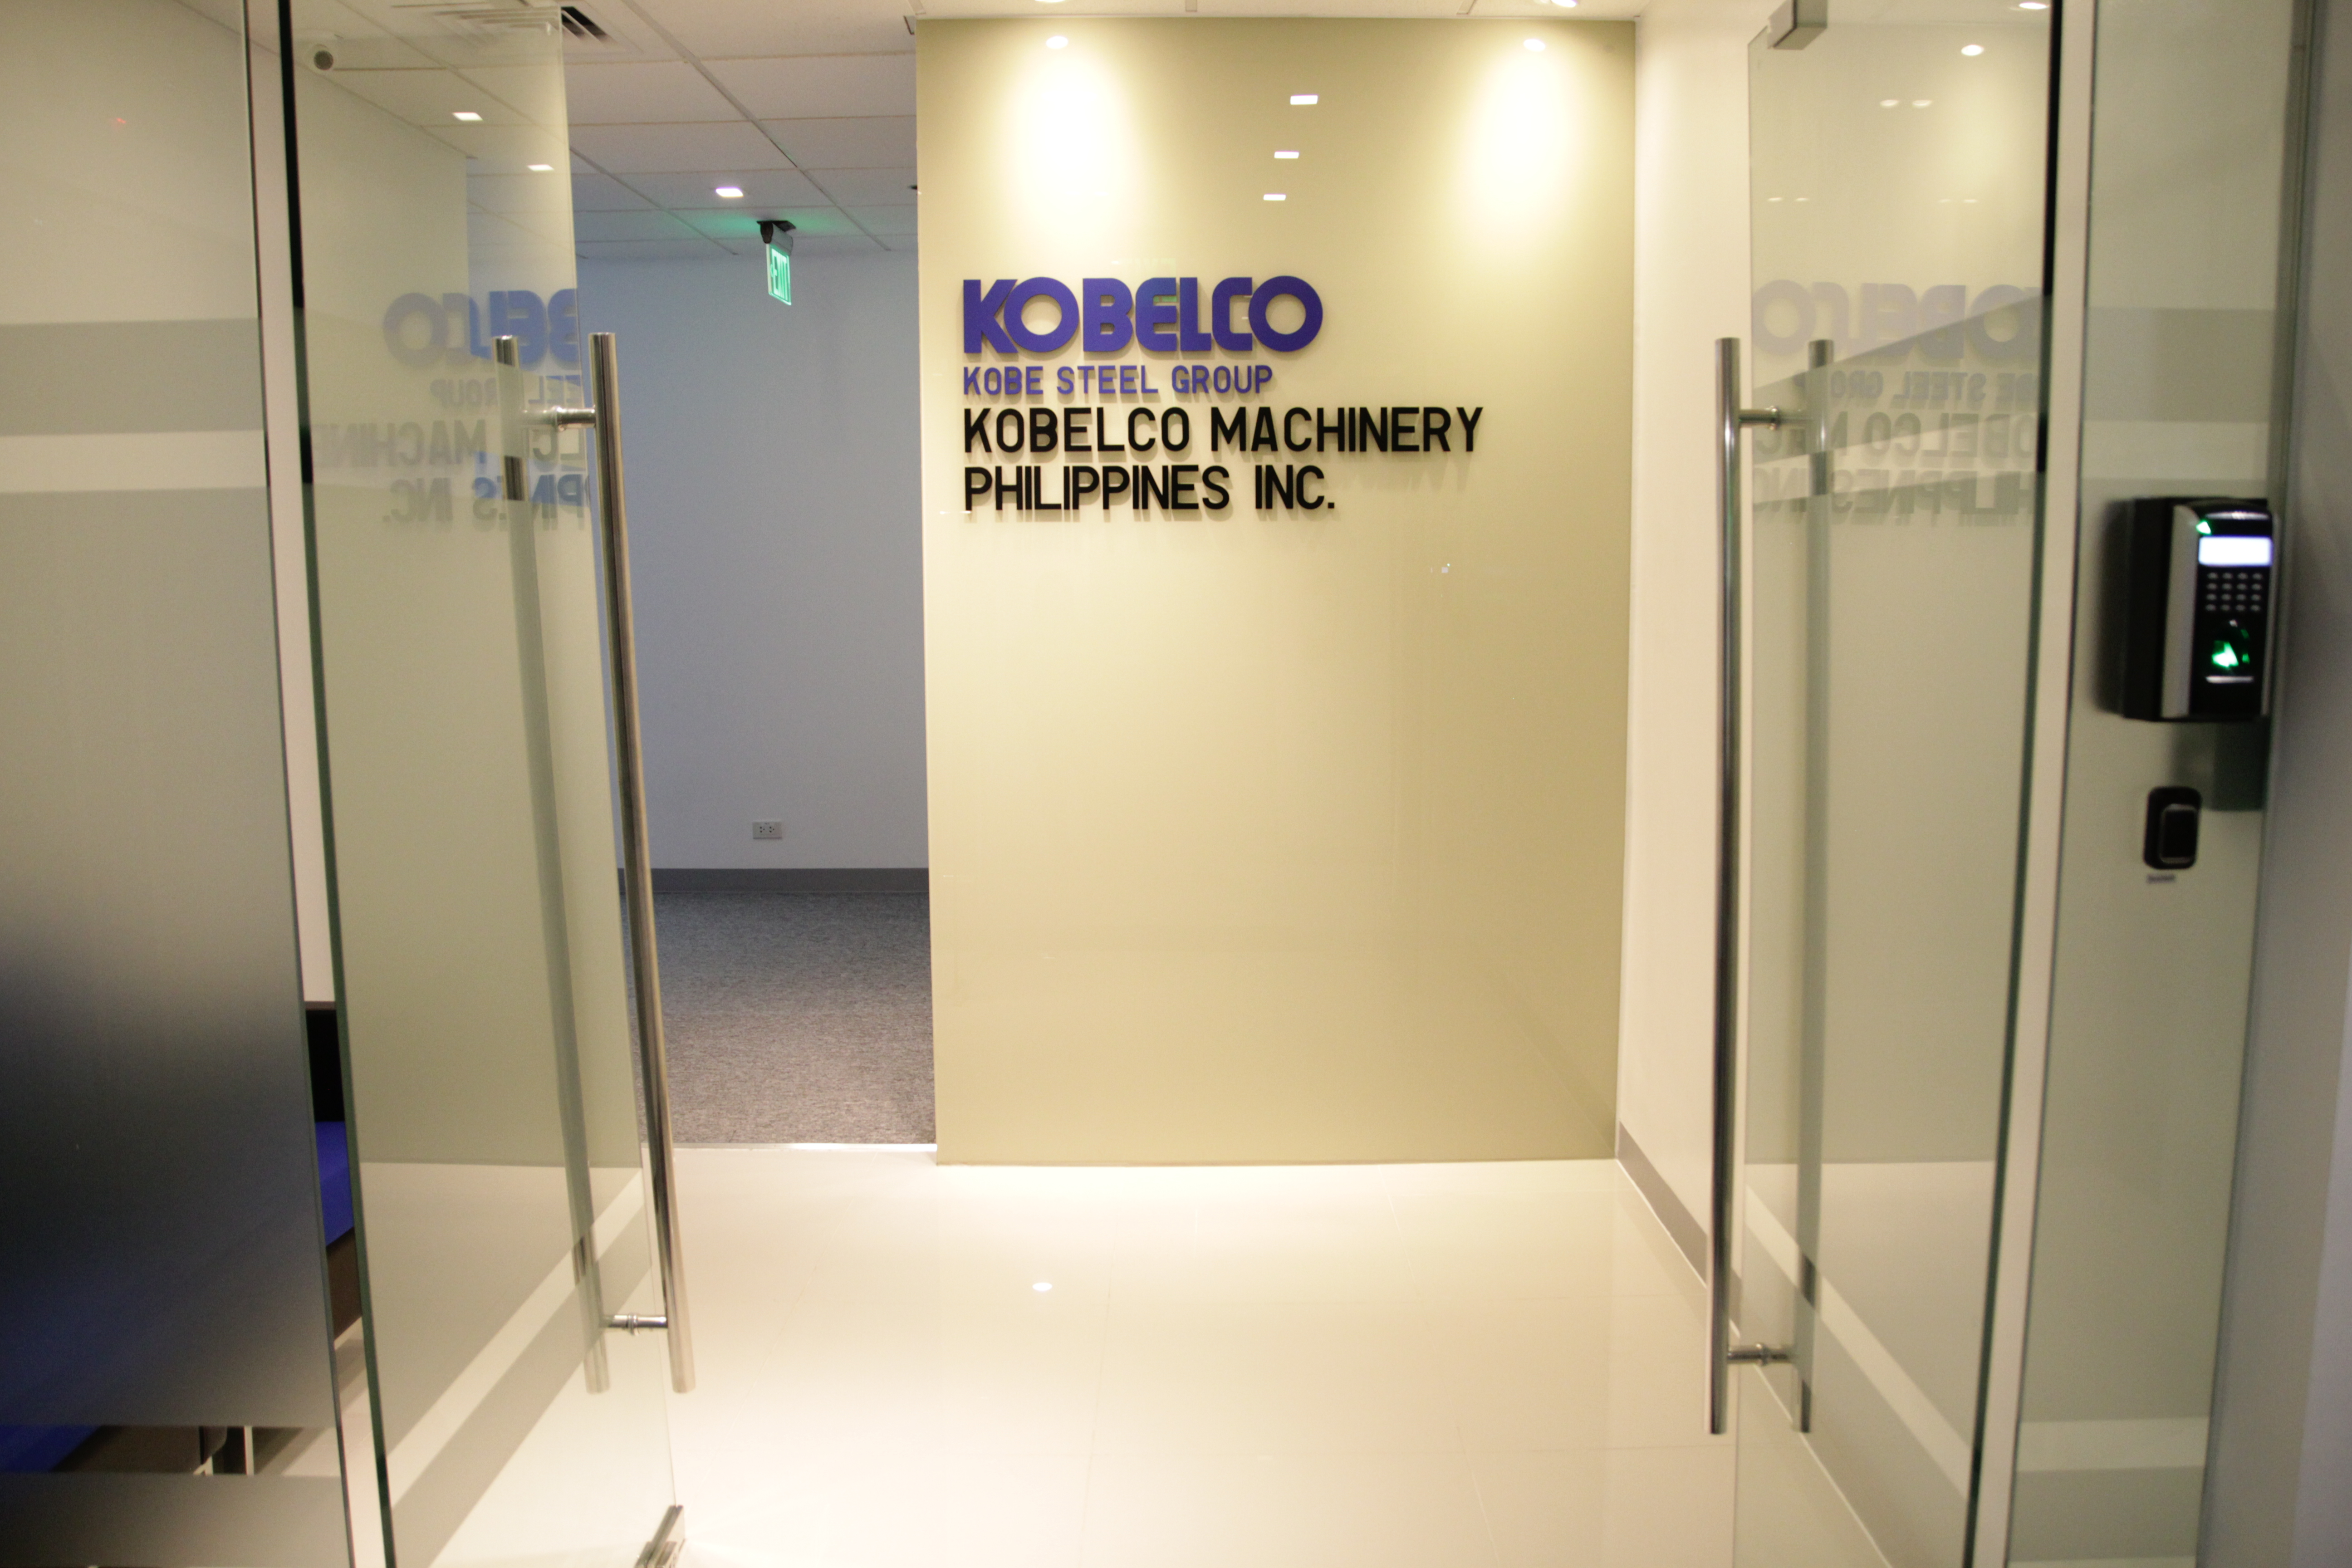 Kobelco Machinery Philippines Inc.